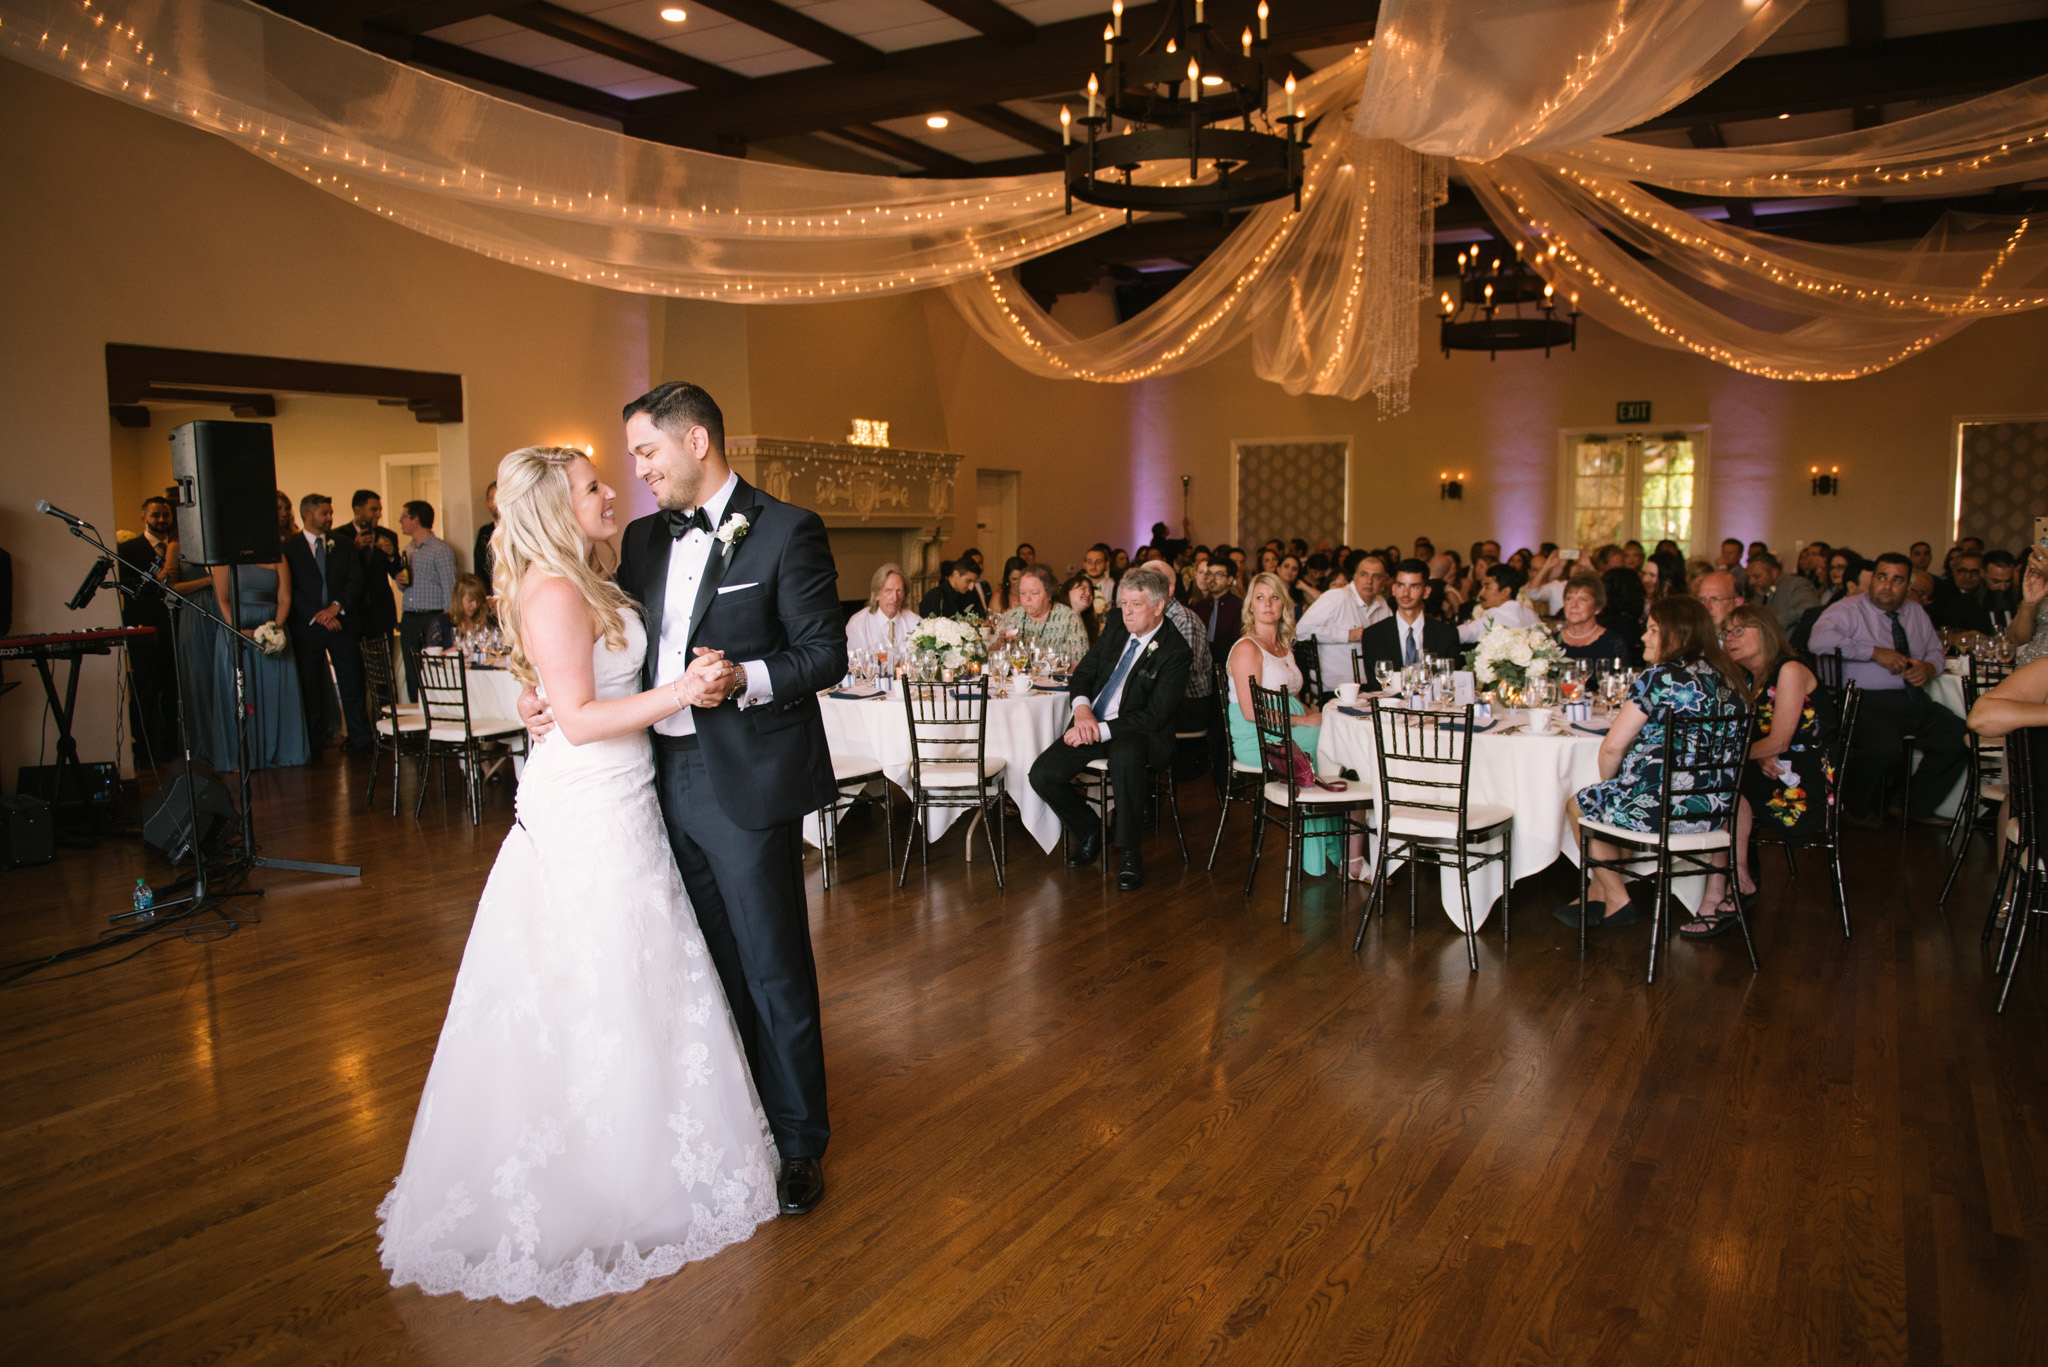 0516-JM-Altadena-Town-And-Country-Club-Los-Angeles-County-Wedding-Photography.jpg